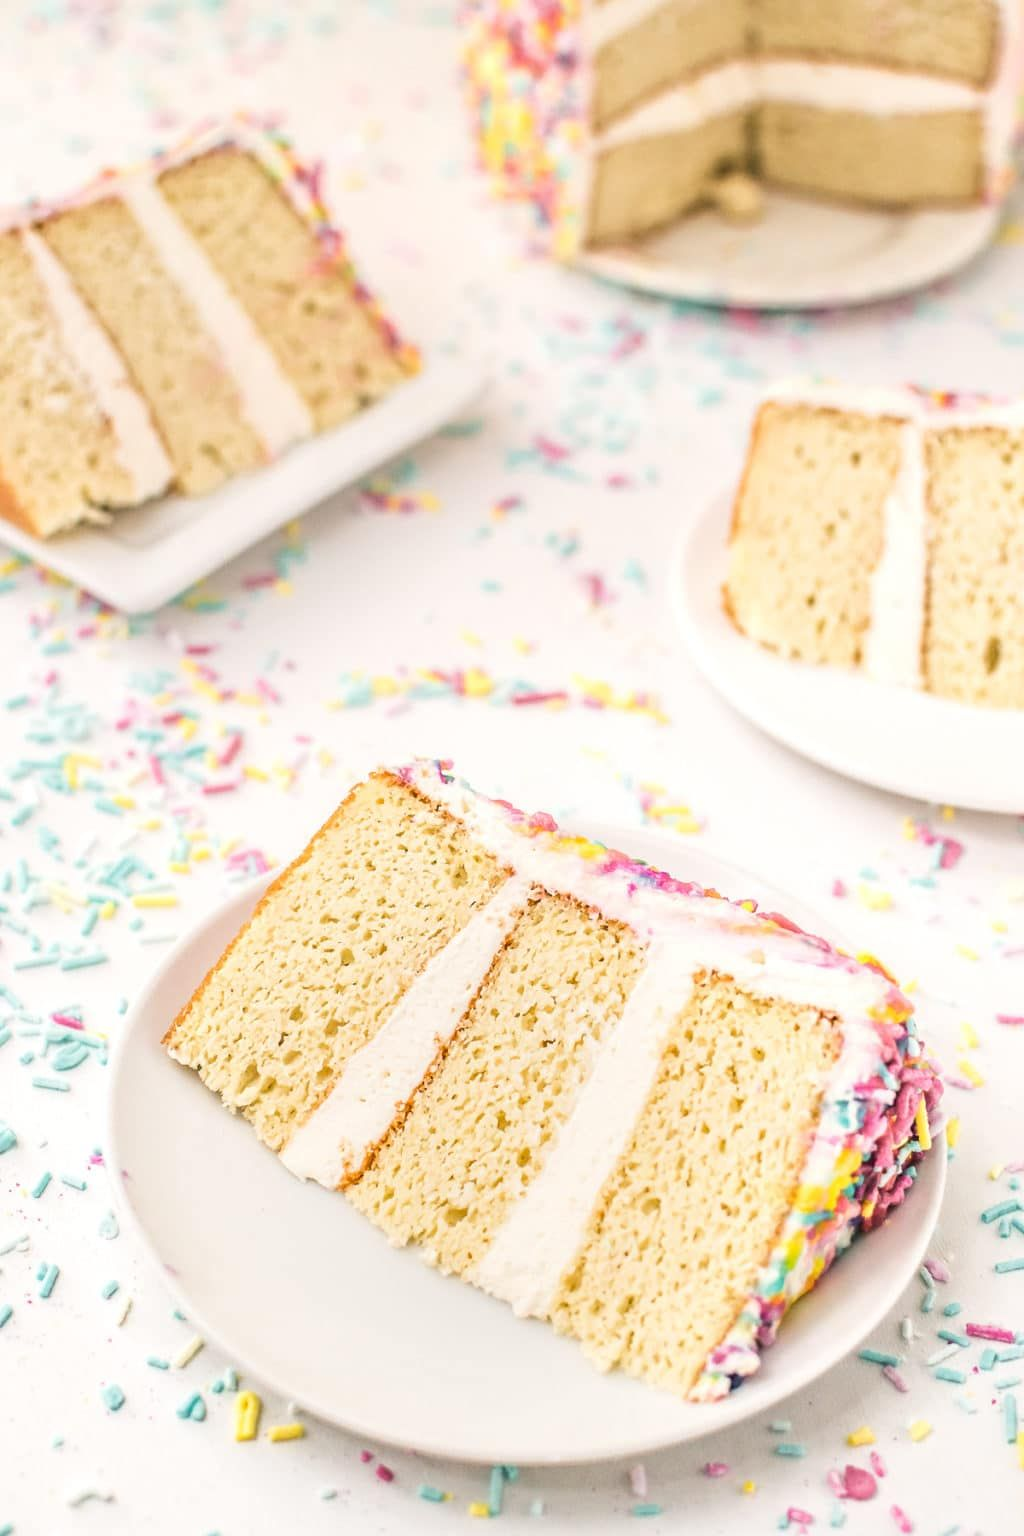 A low carb homemade birthday cake complete with creamy